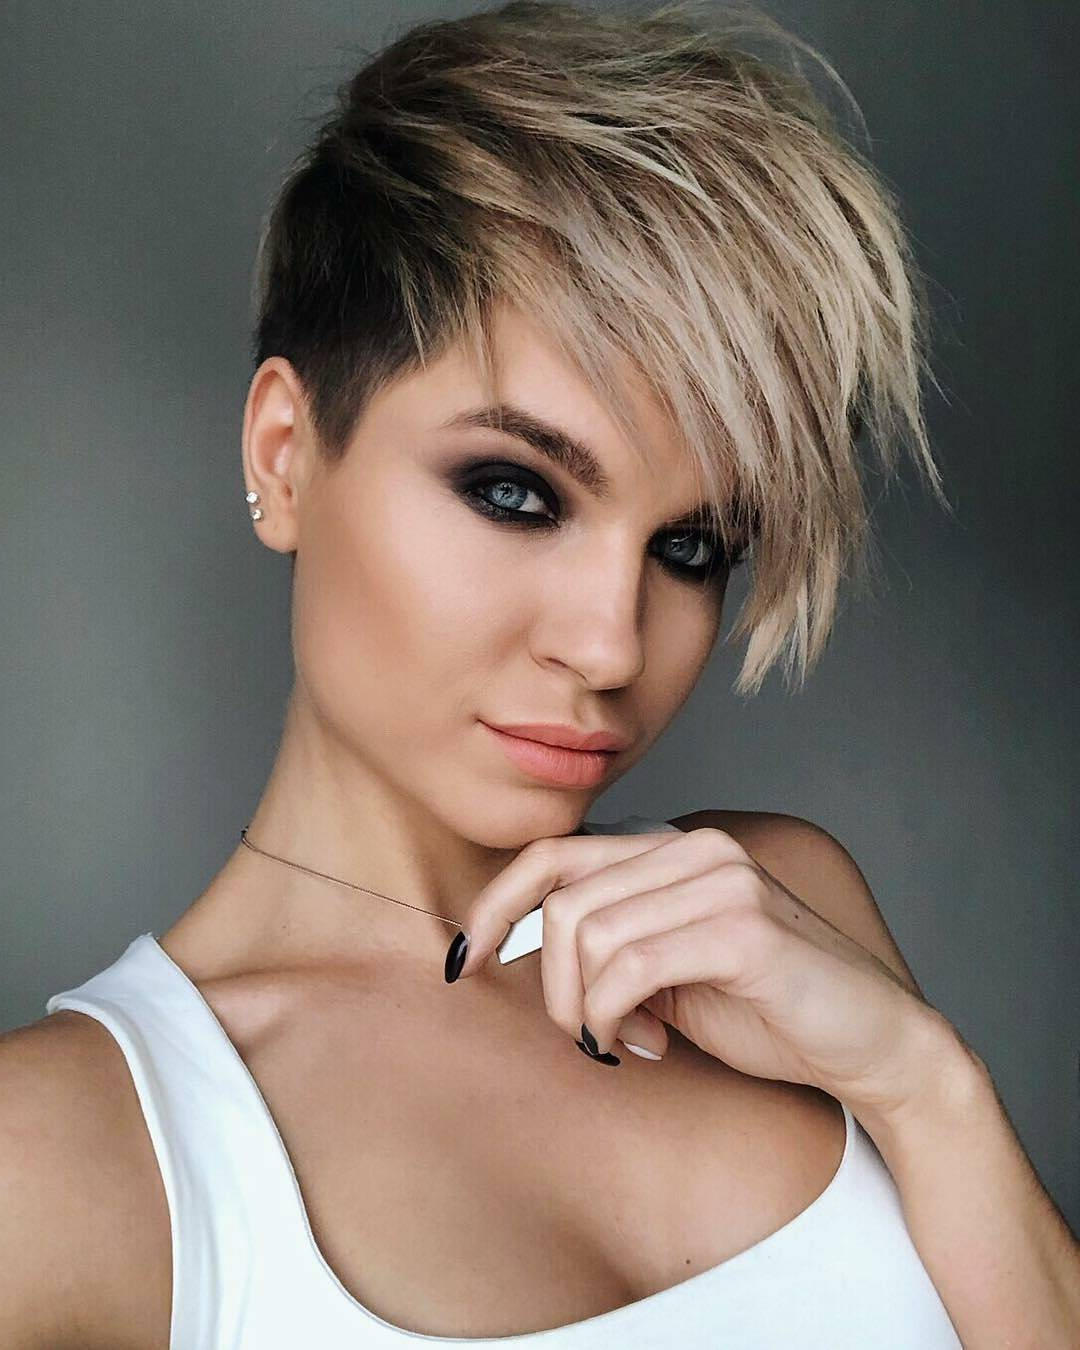 10 New Short Hairstyles For Thick Hair 2018, Women Haircut Ideas Regarding Edgy Short Haircuts For Thick Hair (View 2 of 25)